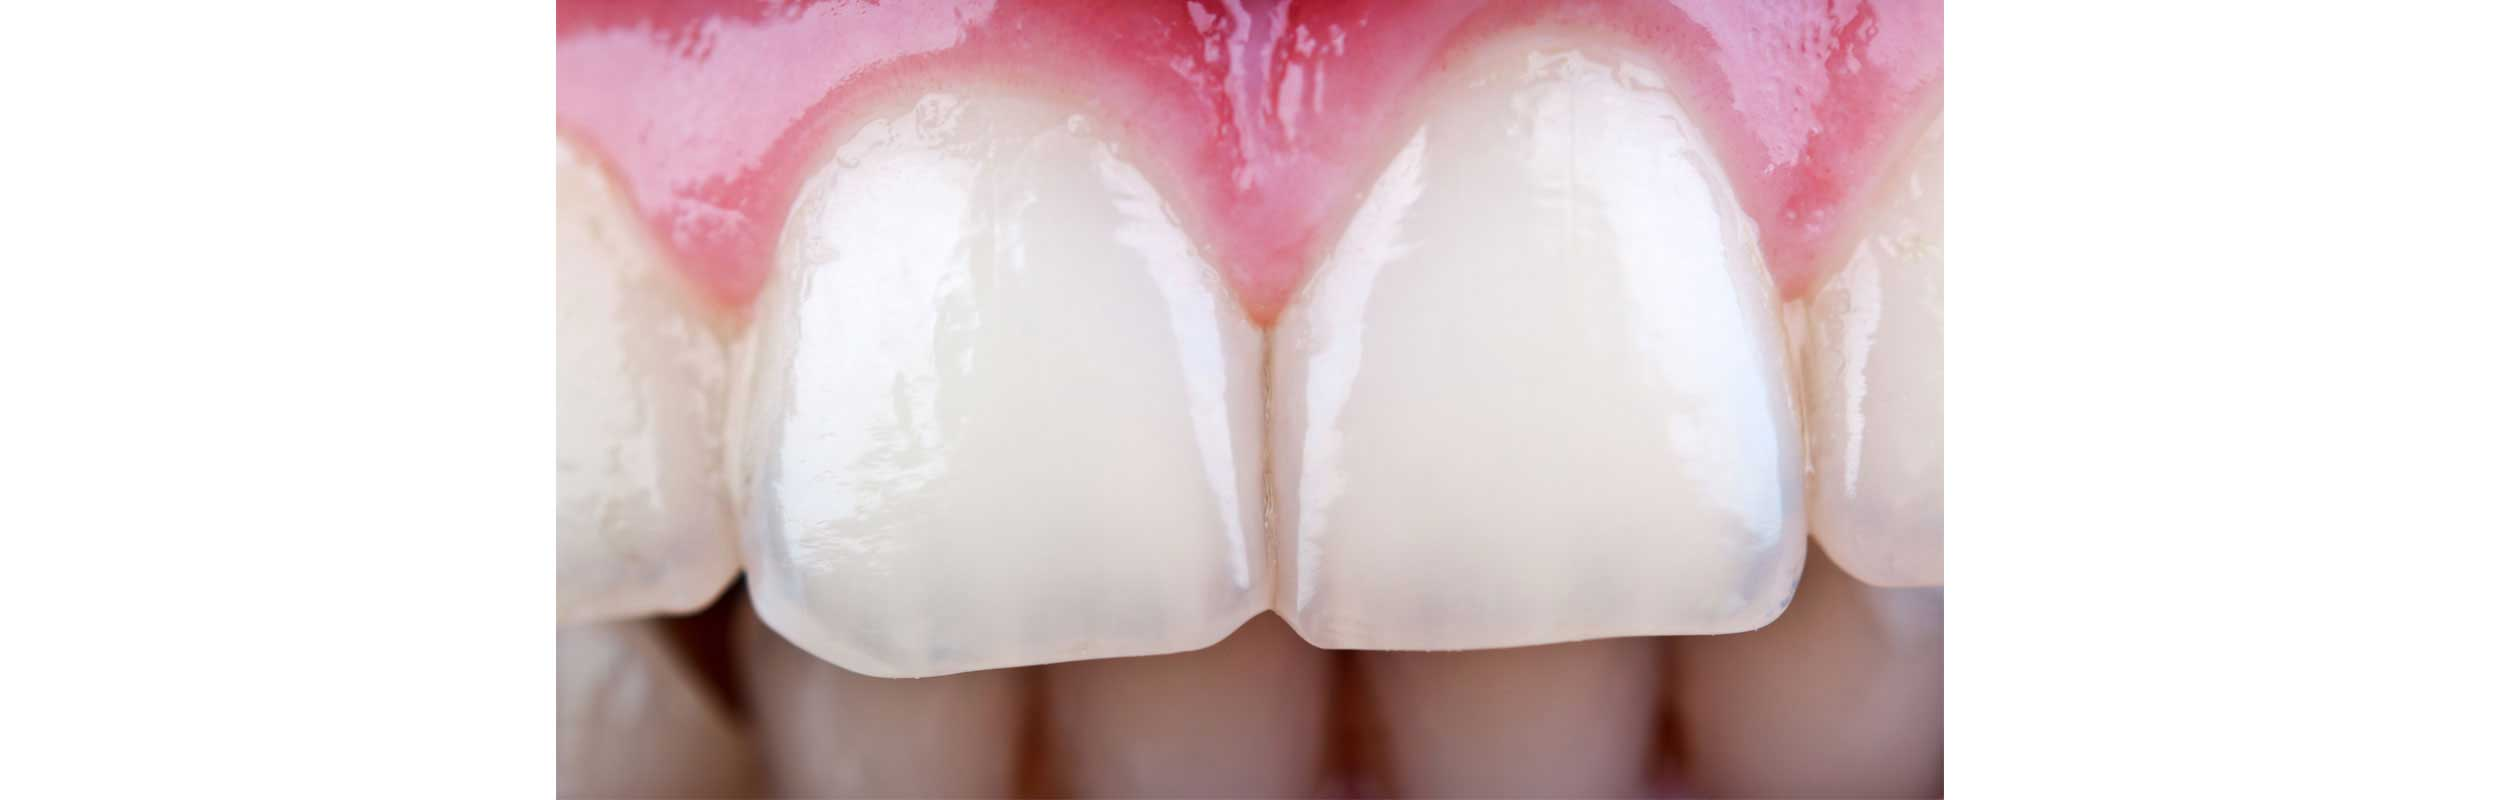 Periodontal Plastic Surgery - Nashville, TN